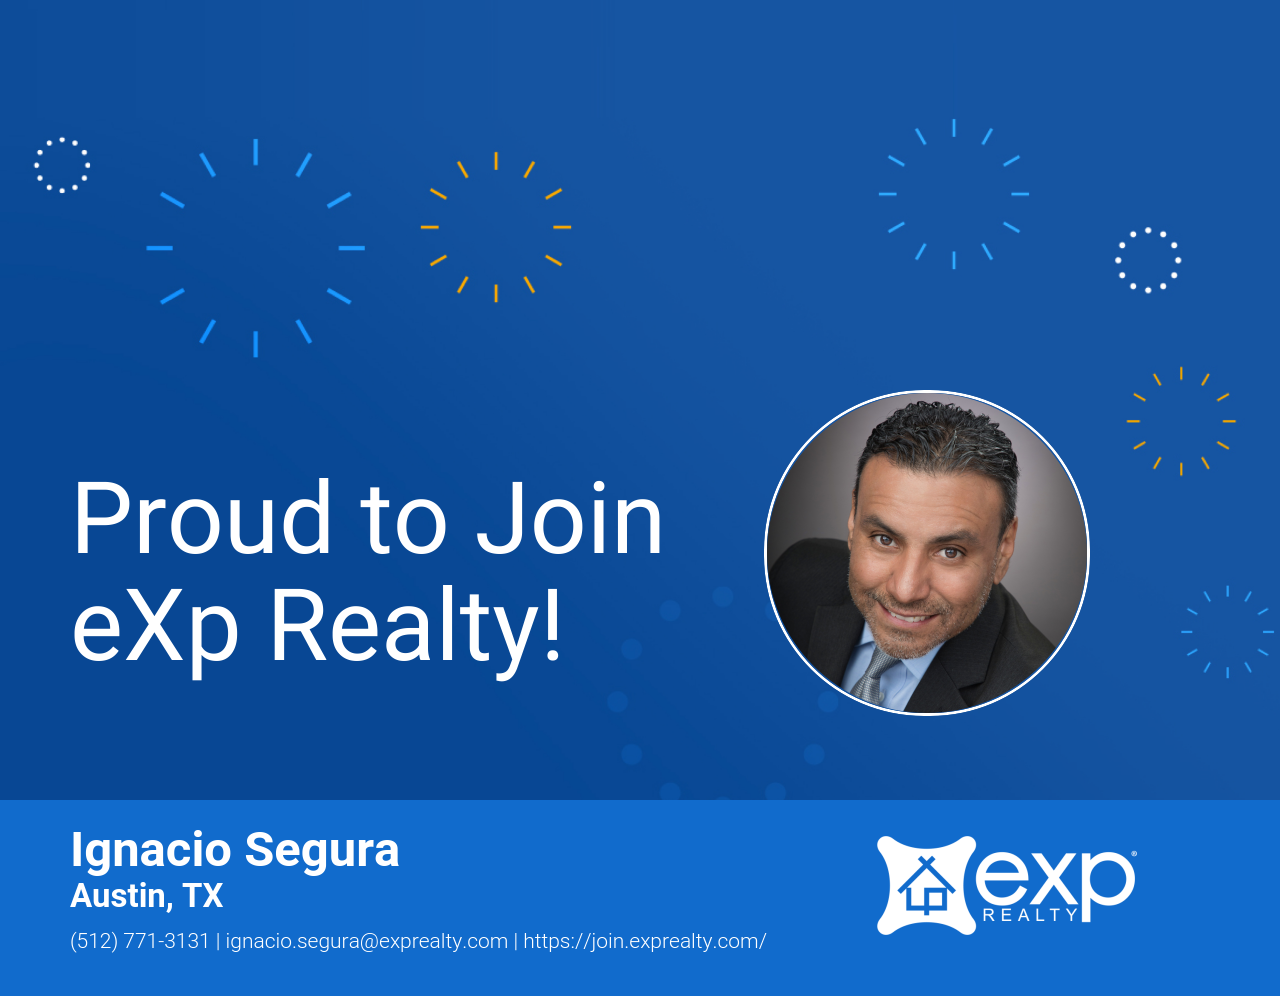 eXp Realty Welcomes Ignacio Segura!